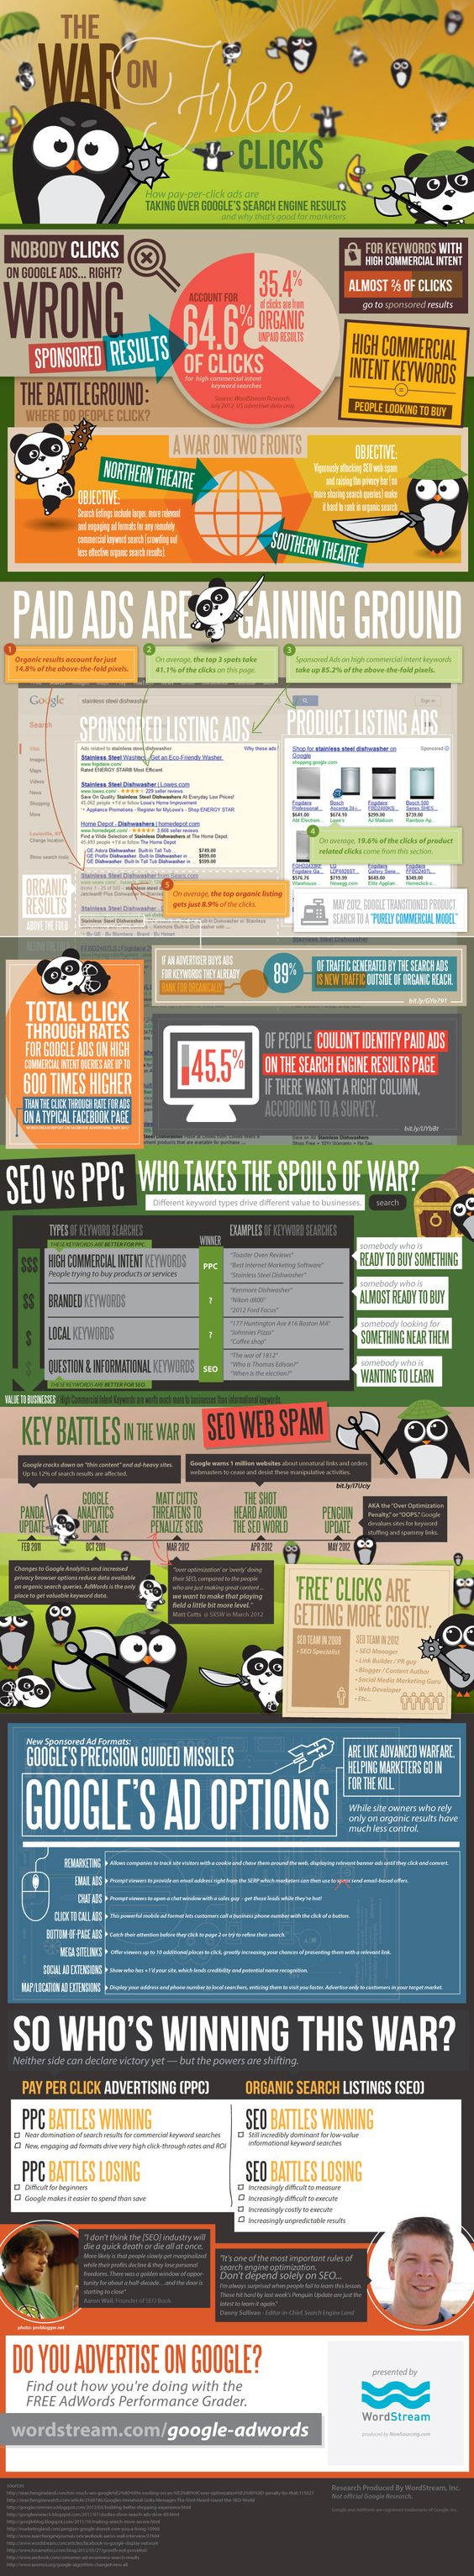 More @ http://legendary-seo.de